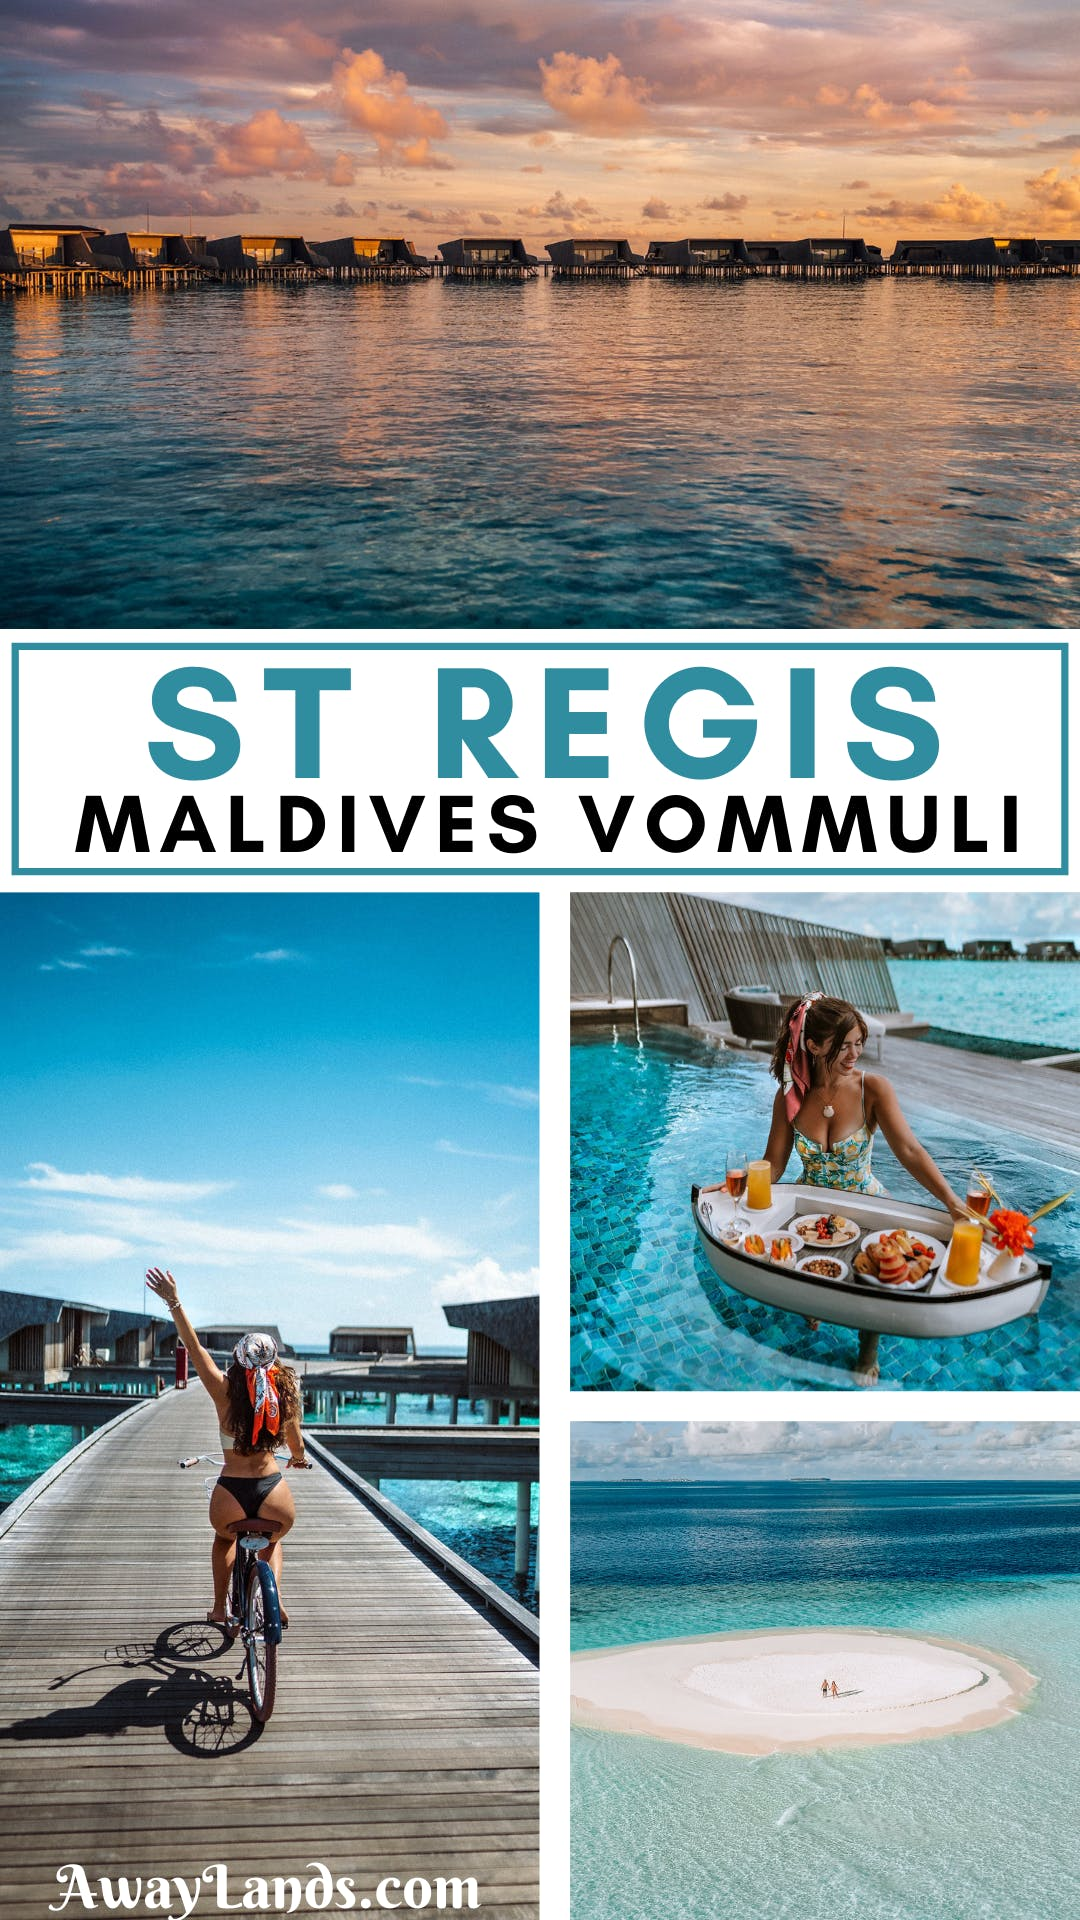 Find out why the St. Regis Maldives Vommuli Resort is one of the best resorts in the Maldives in this St. Regis Maldives Vommuli review.   the st regis maldives vommuli resort / wow architects   st regis maldives interior   st regis maldives room   st regis maldives photography   st regis maldives villa   maldives st regis   luxury maldives villa   luxury maldives bungalow   luxury maldives hotel   luxury maldives paradise   luxury resort in maldives